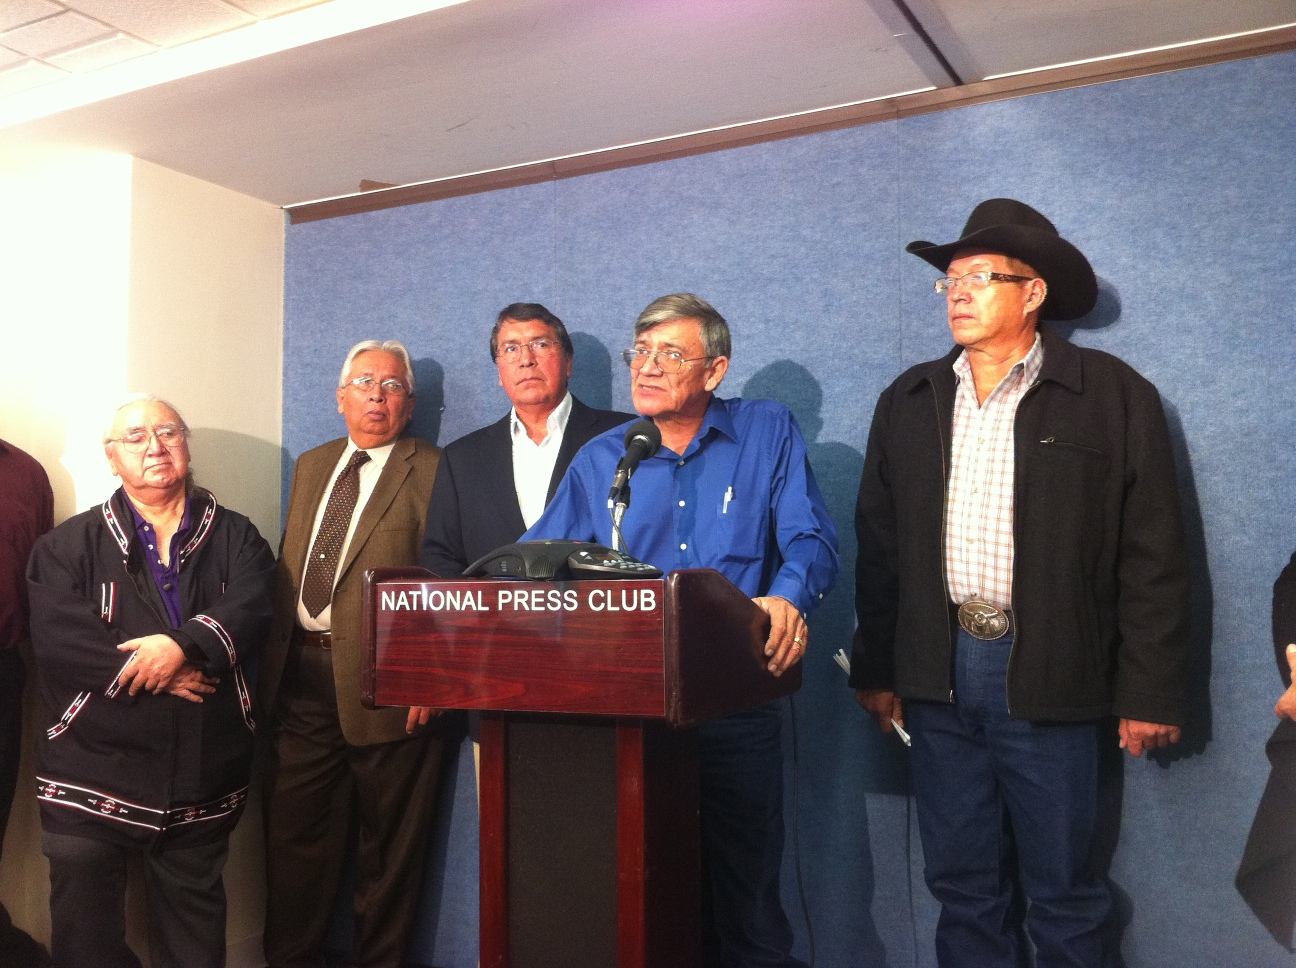 Oglala Sioux Tribe President John Steele speaking at National Press Club, 2011.